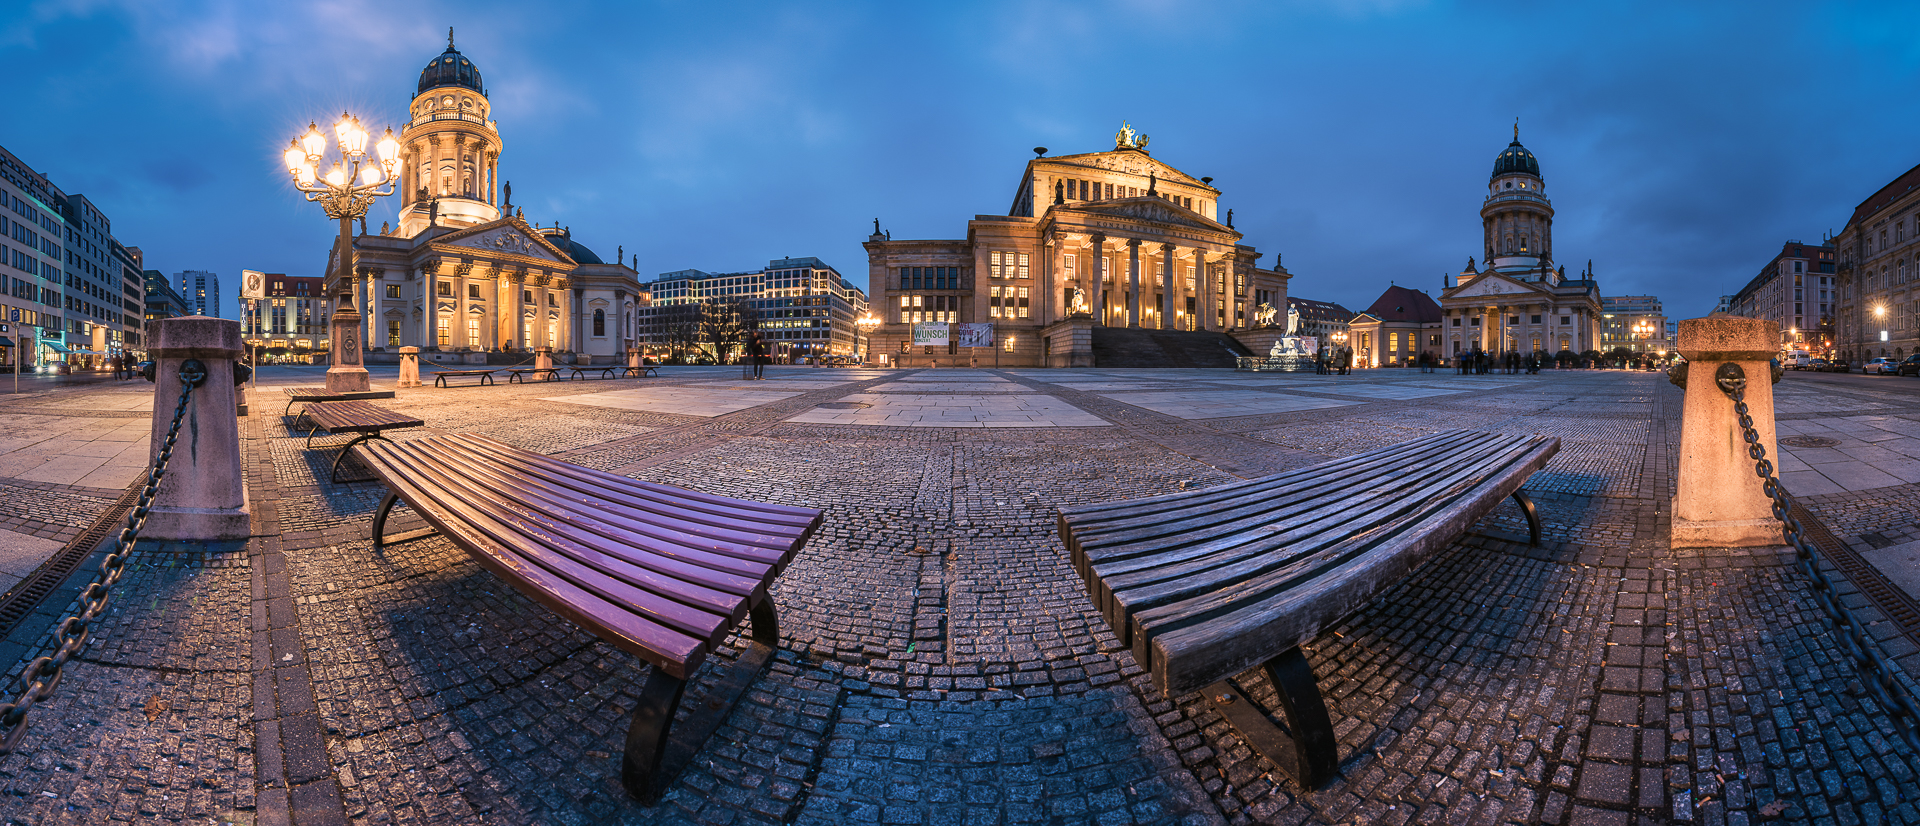 Berlin, Gendarmenmarkt, Panorama, Blue Hour, 2016